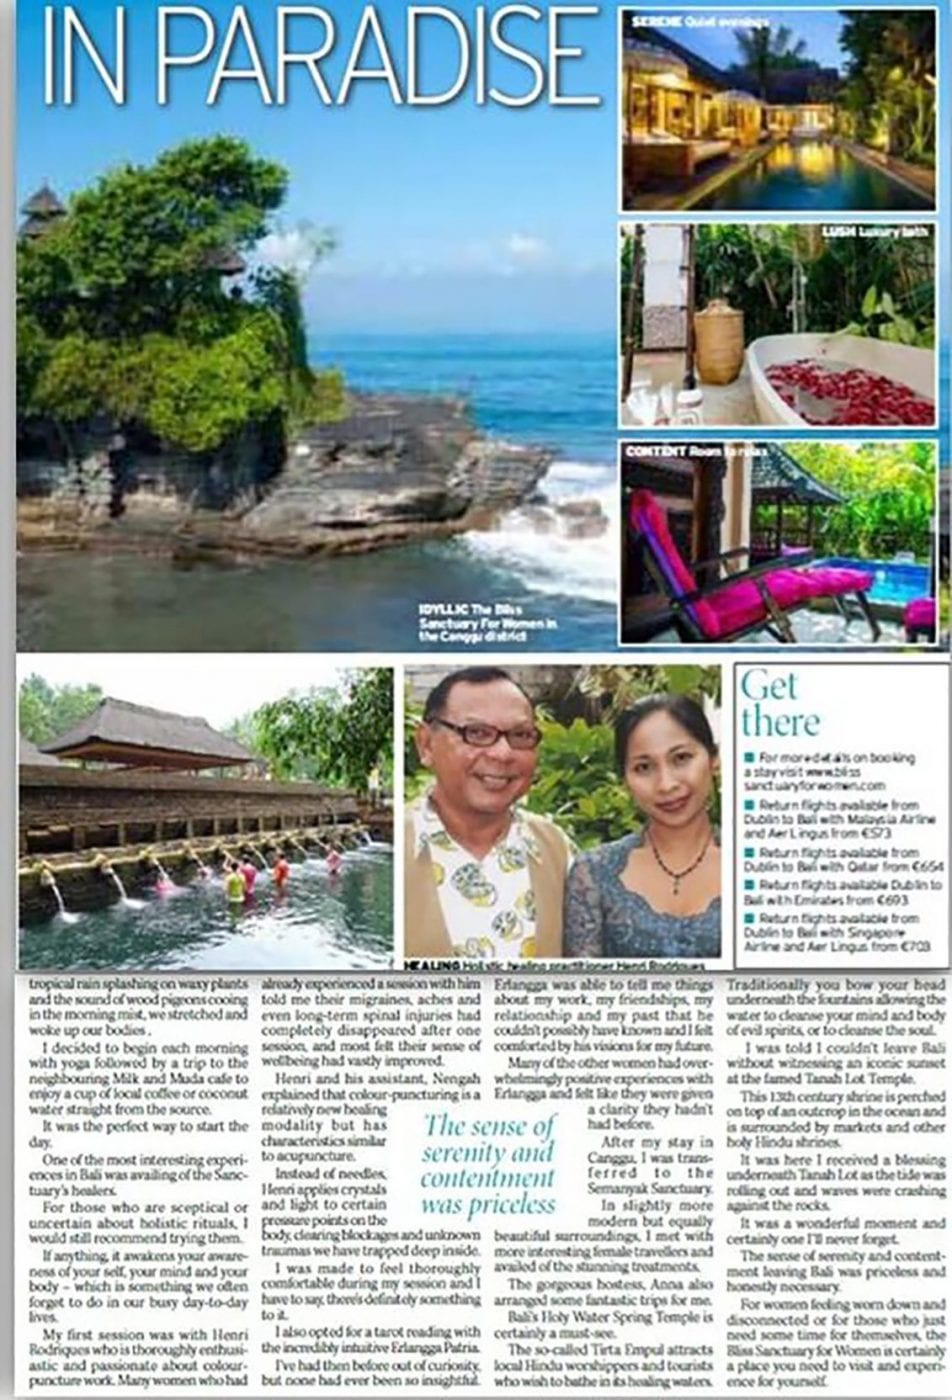 Irish Daily Mirror: Having a Bali in Paradise - Claire Scott